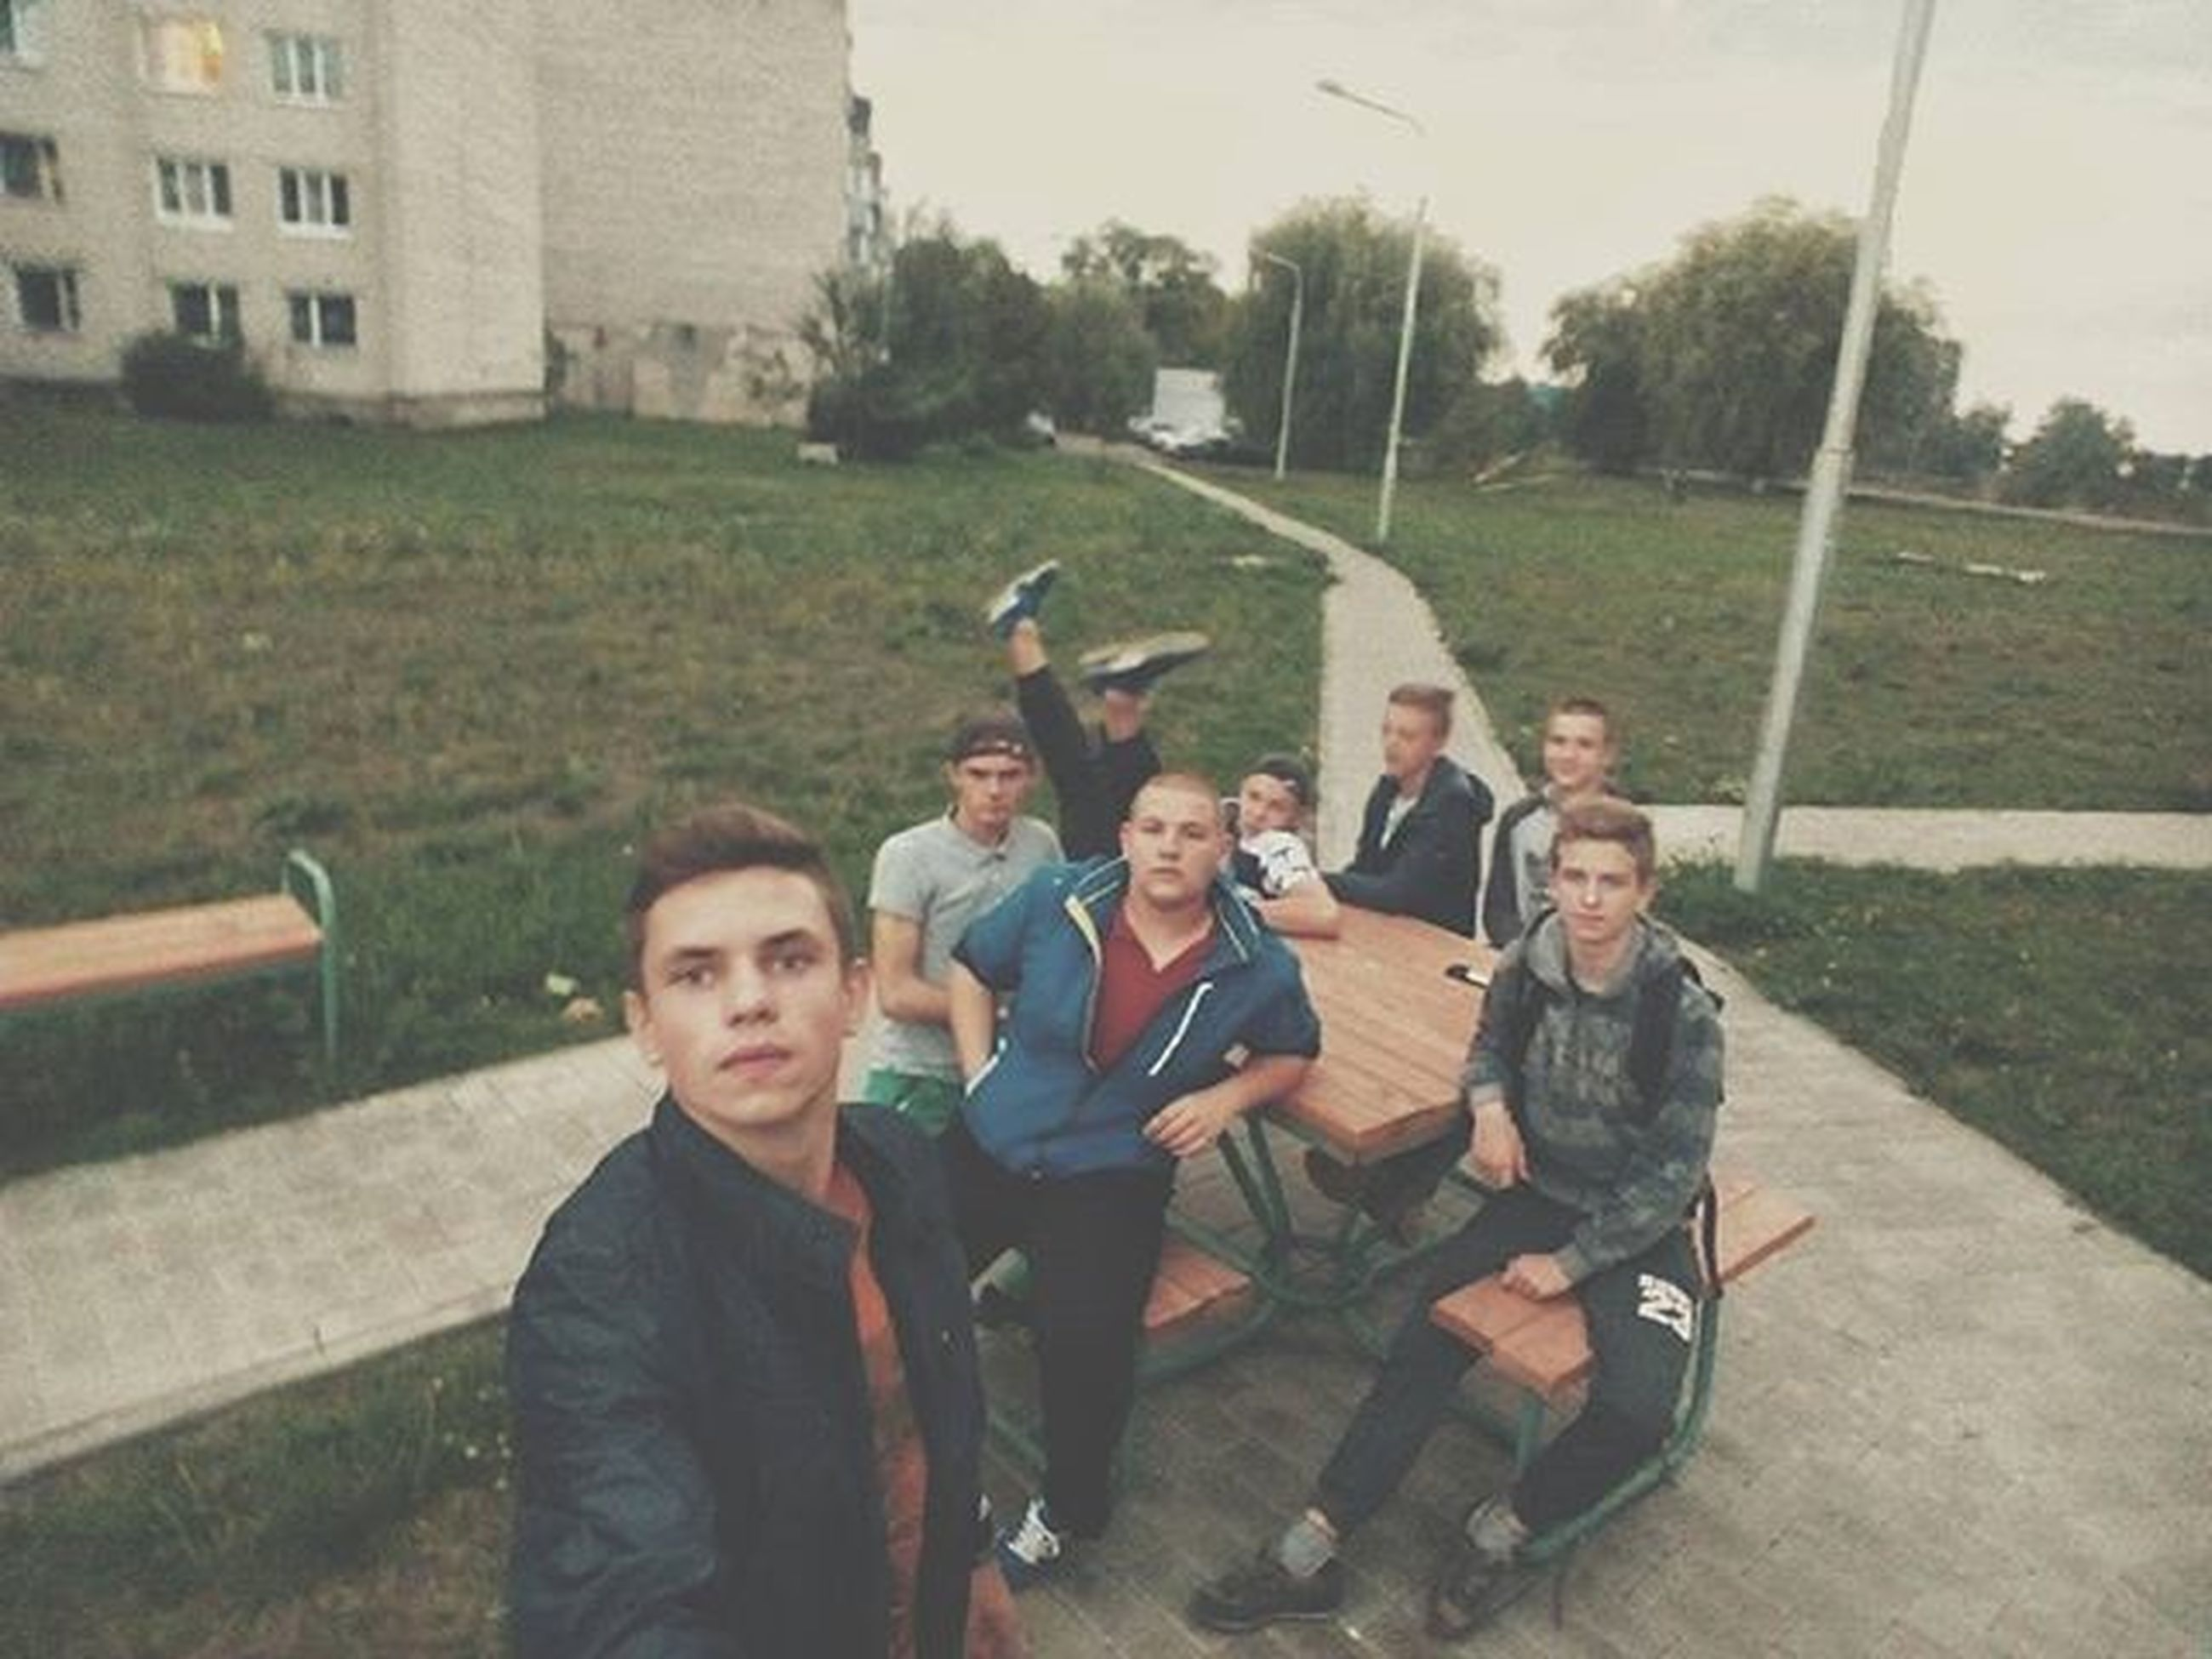 lifestyles, person, leisure activity, togetherness, smiling, bonding, casual clothing, looking at camera, portrait, happiness, young men, young adult, love, boys, front view, friendship, childhood